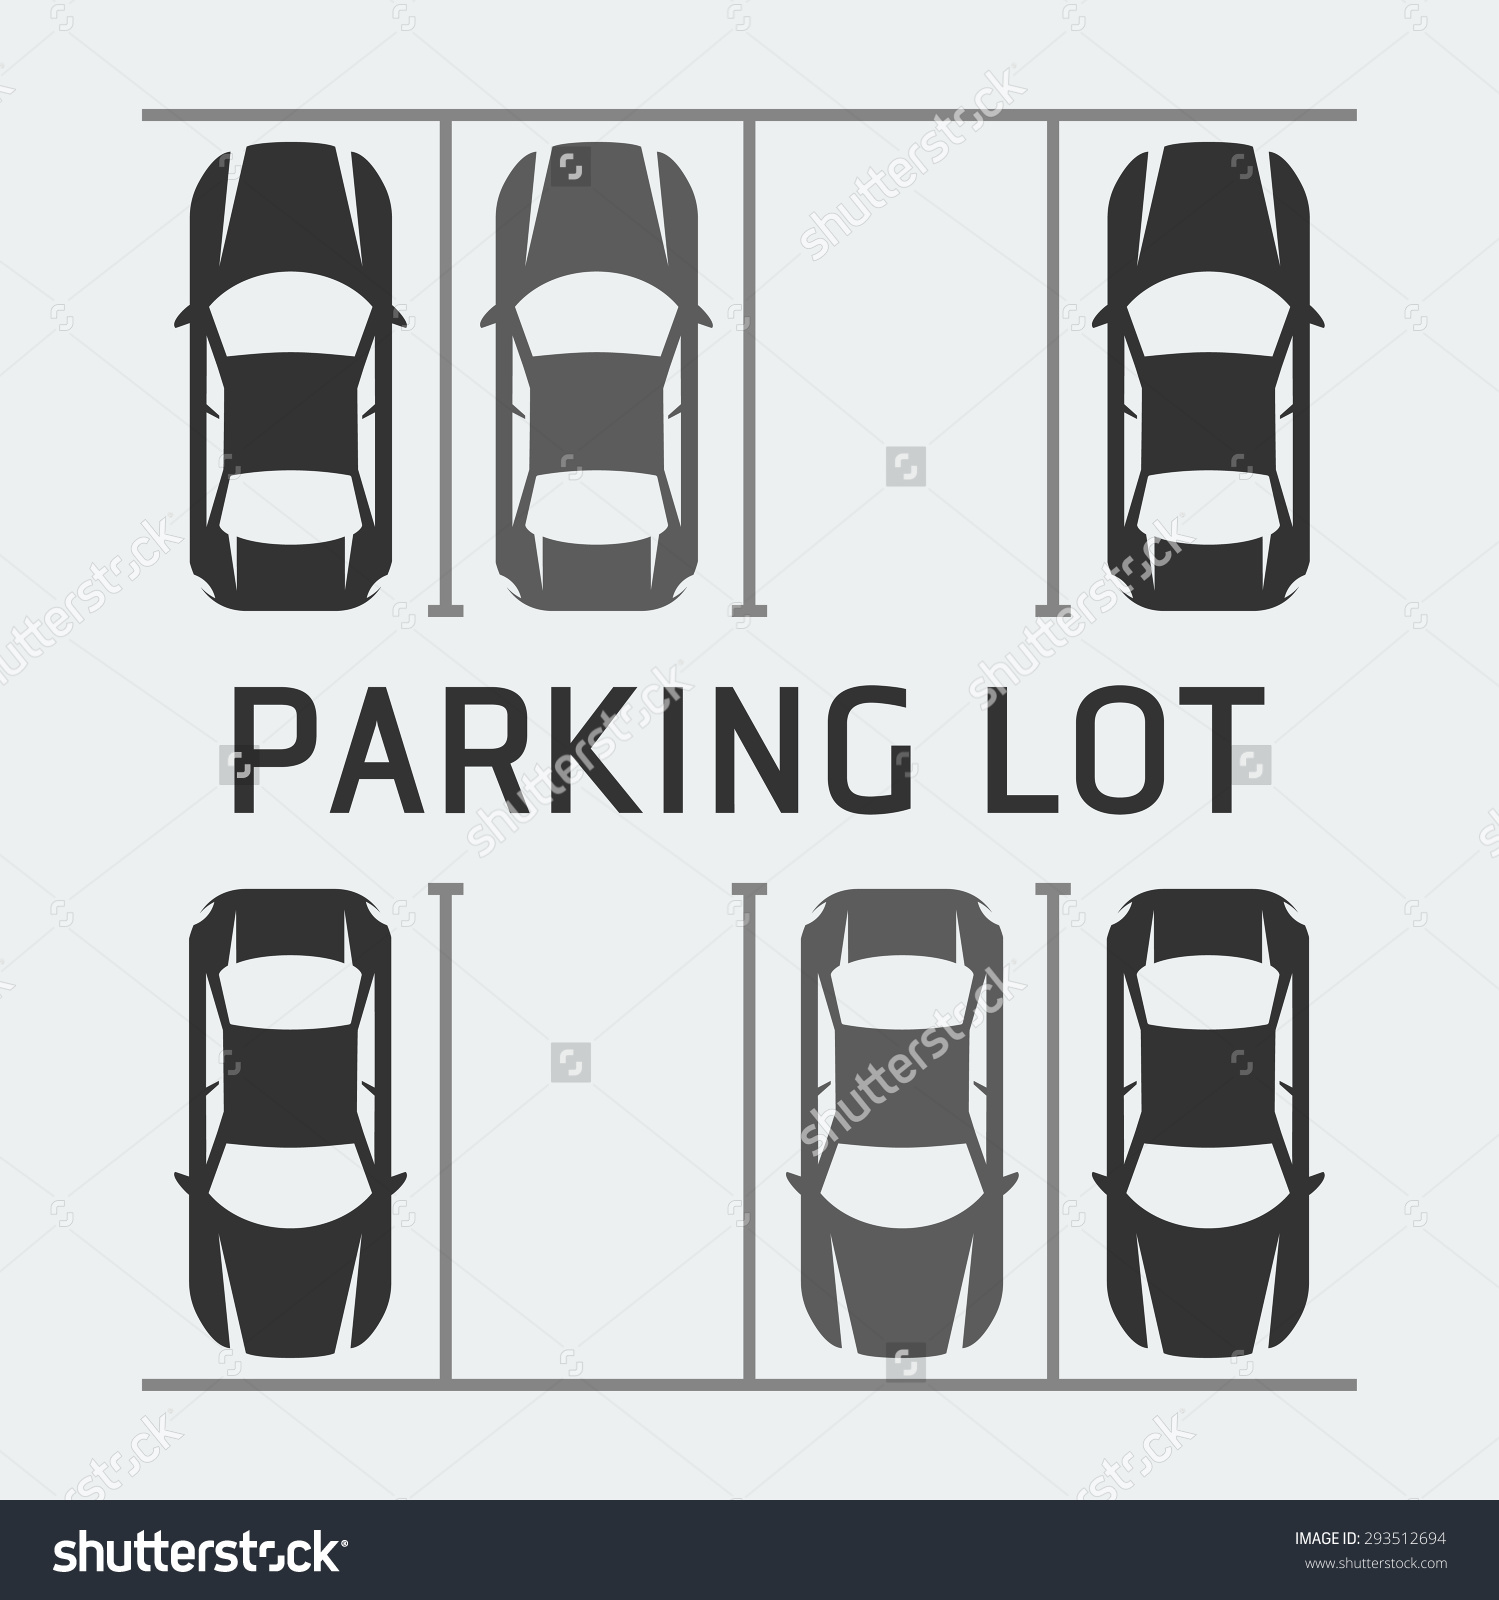 Parking space clipart - Clipground